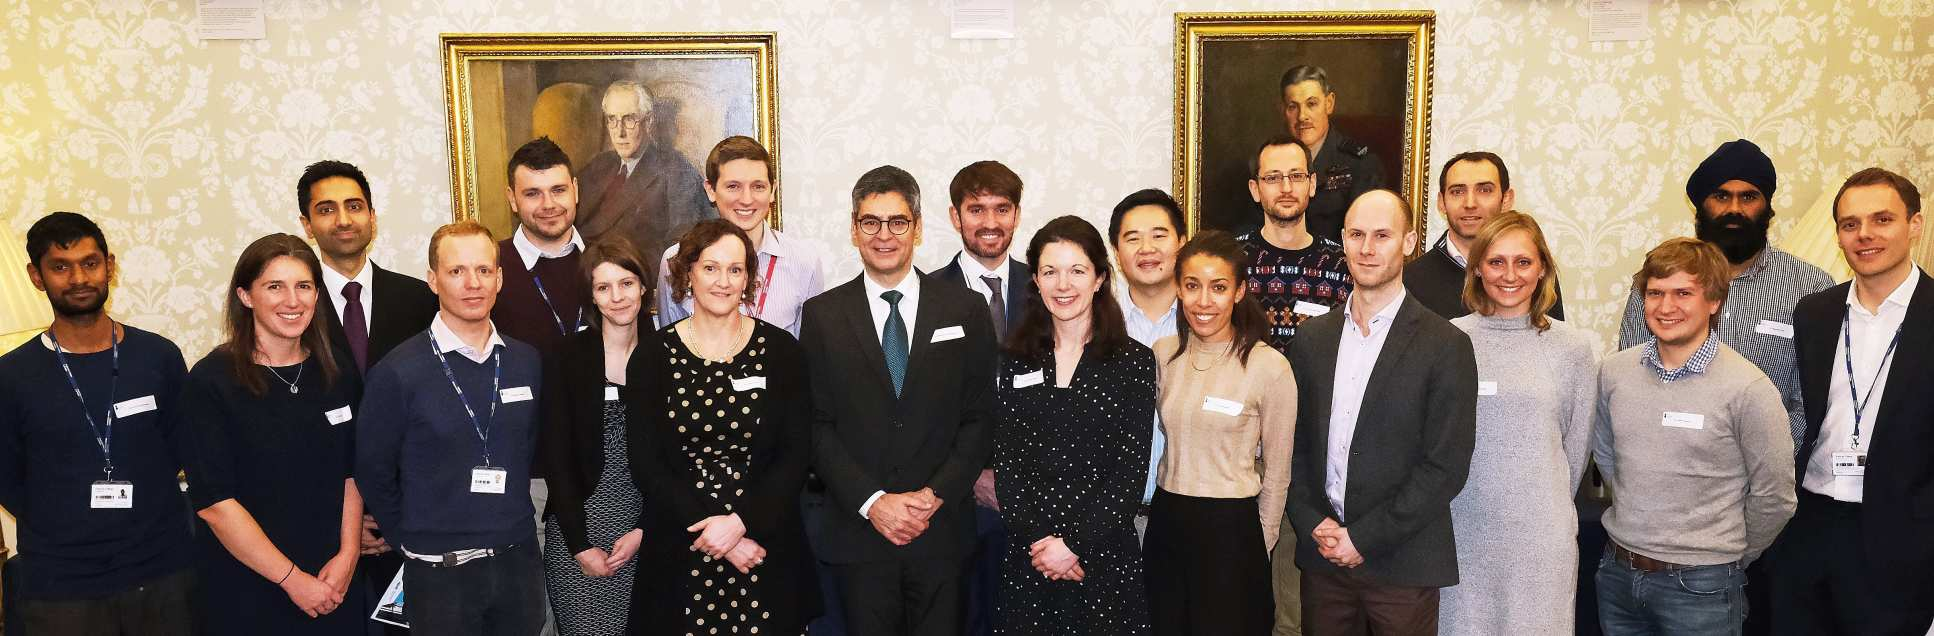 4i Fellows with Directors of the scheme, Professor Matthew Pickering and Professor Clare Lloyd